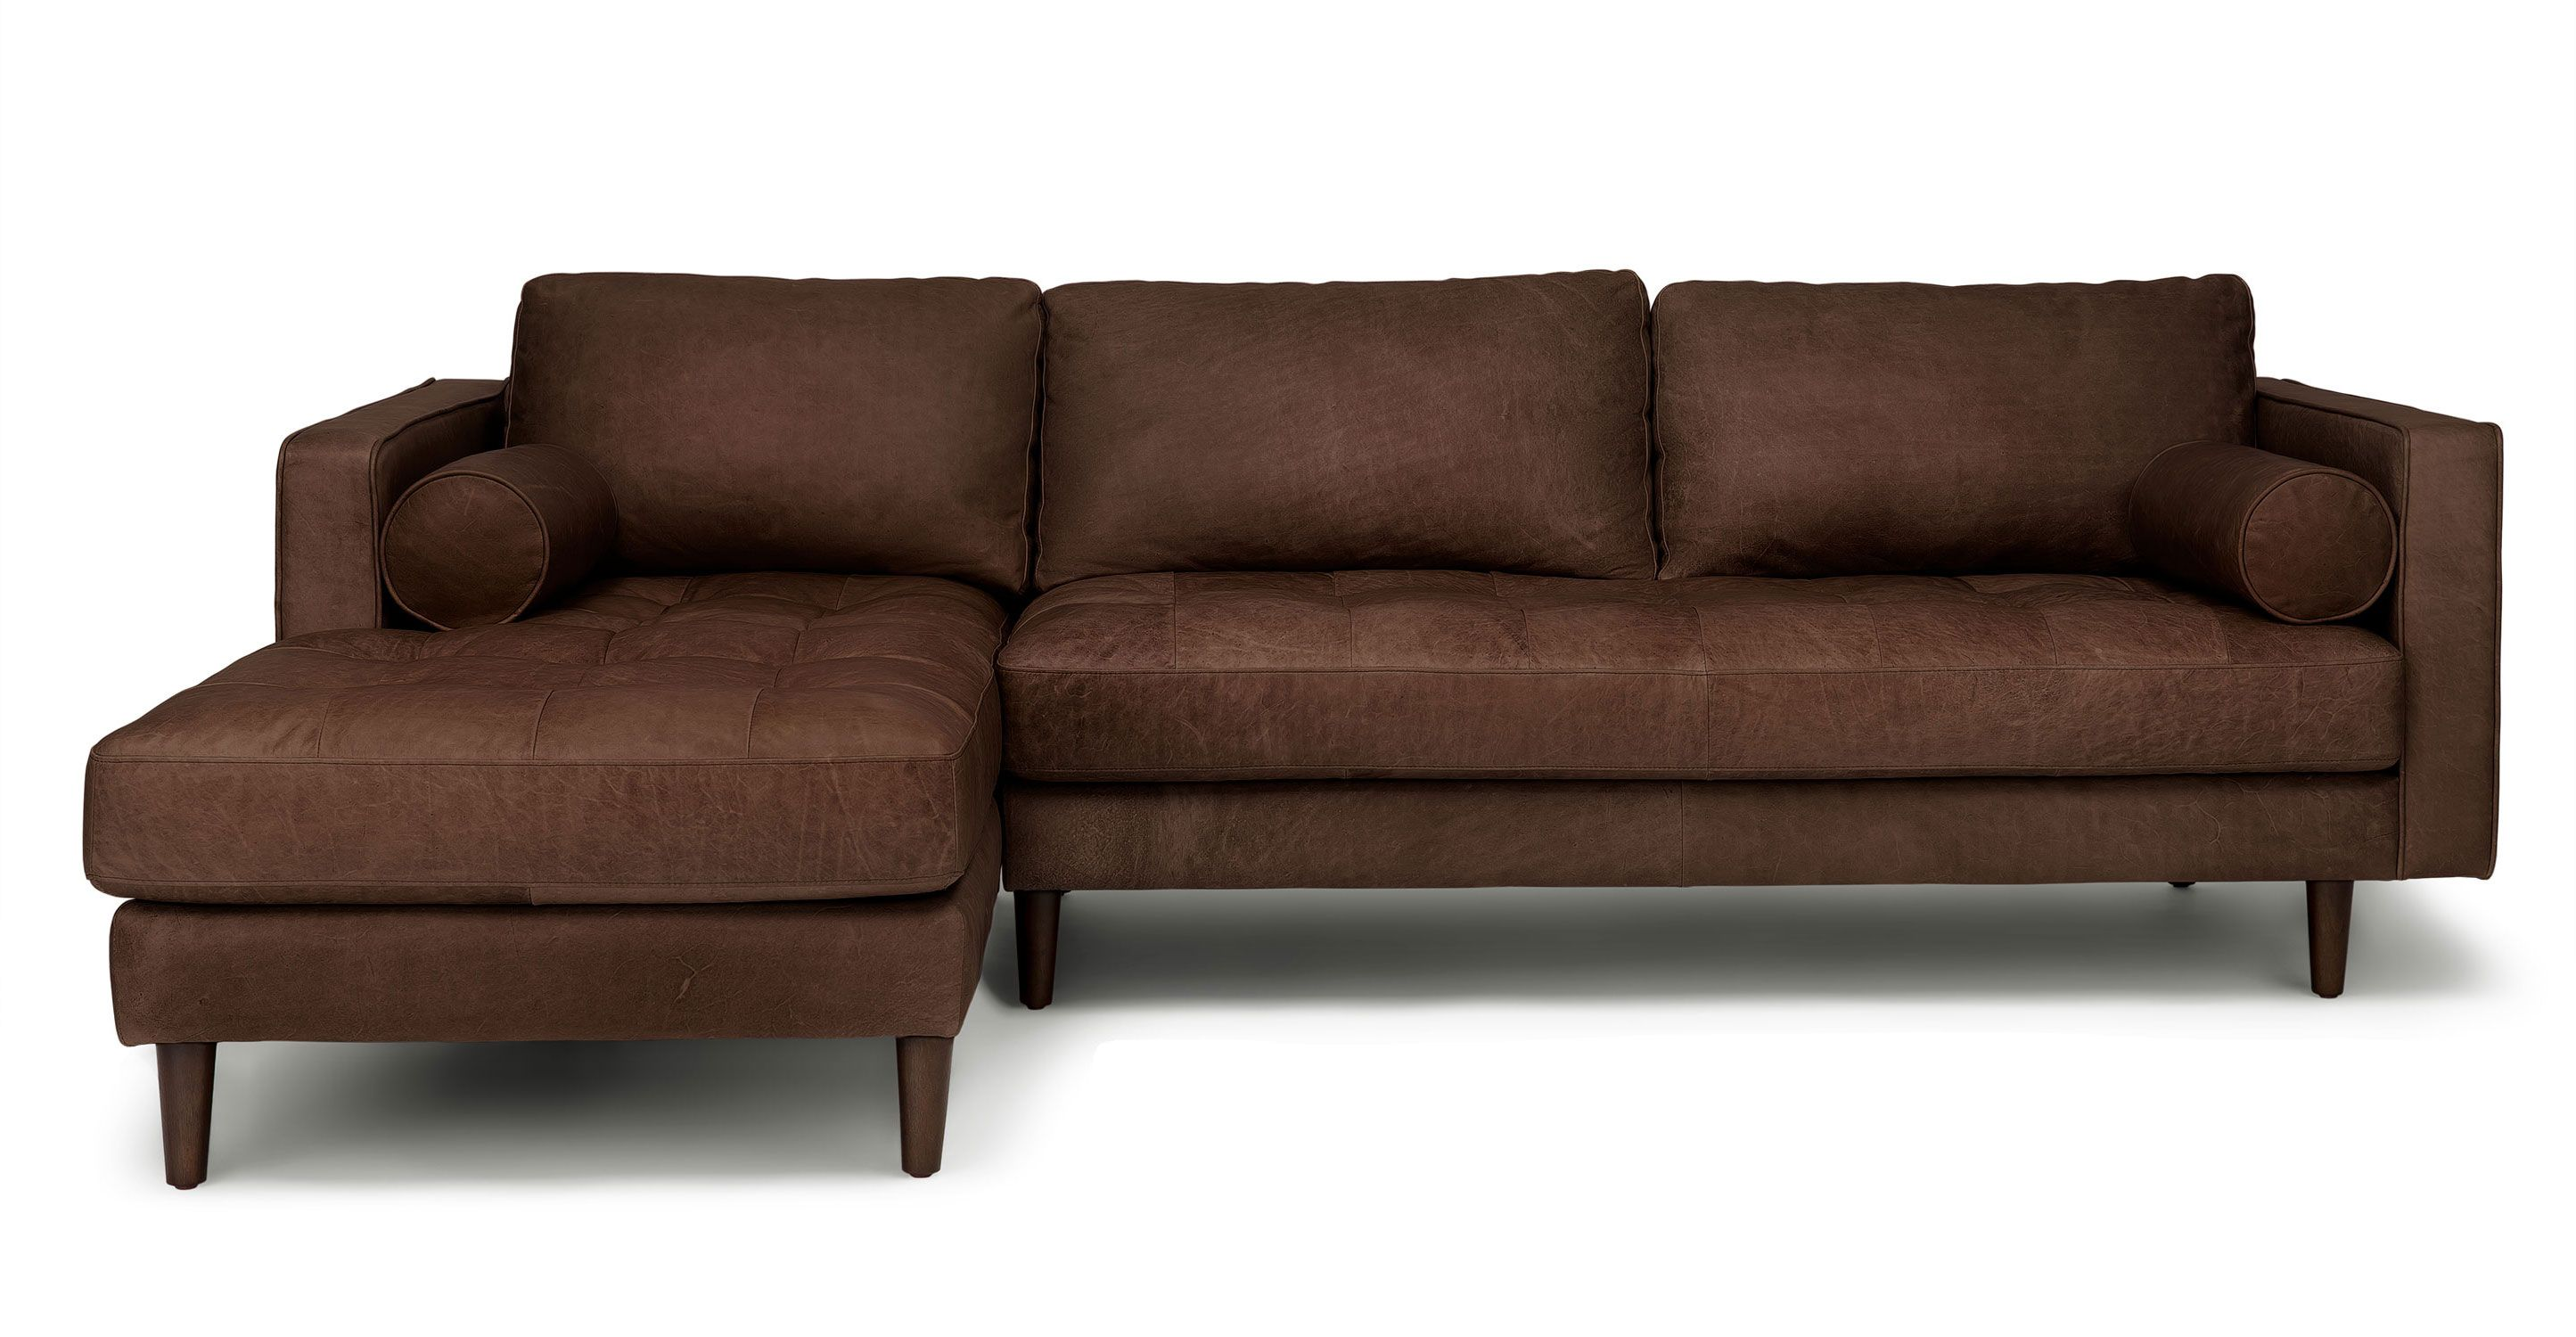 Sven Charme Chocolat Left Sectional Sofa With Images Mid Century Modern Sectional Sofa Sectional Sofa Best Leather Sofa